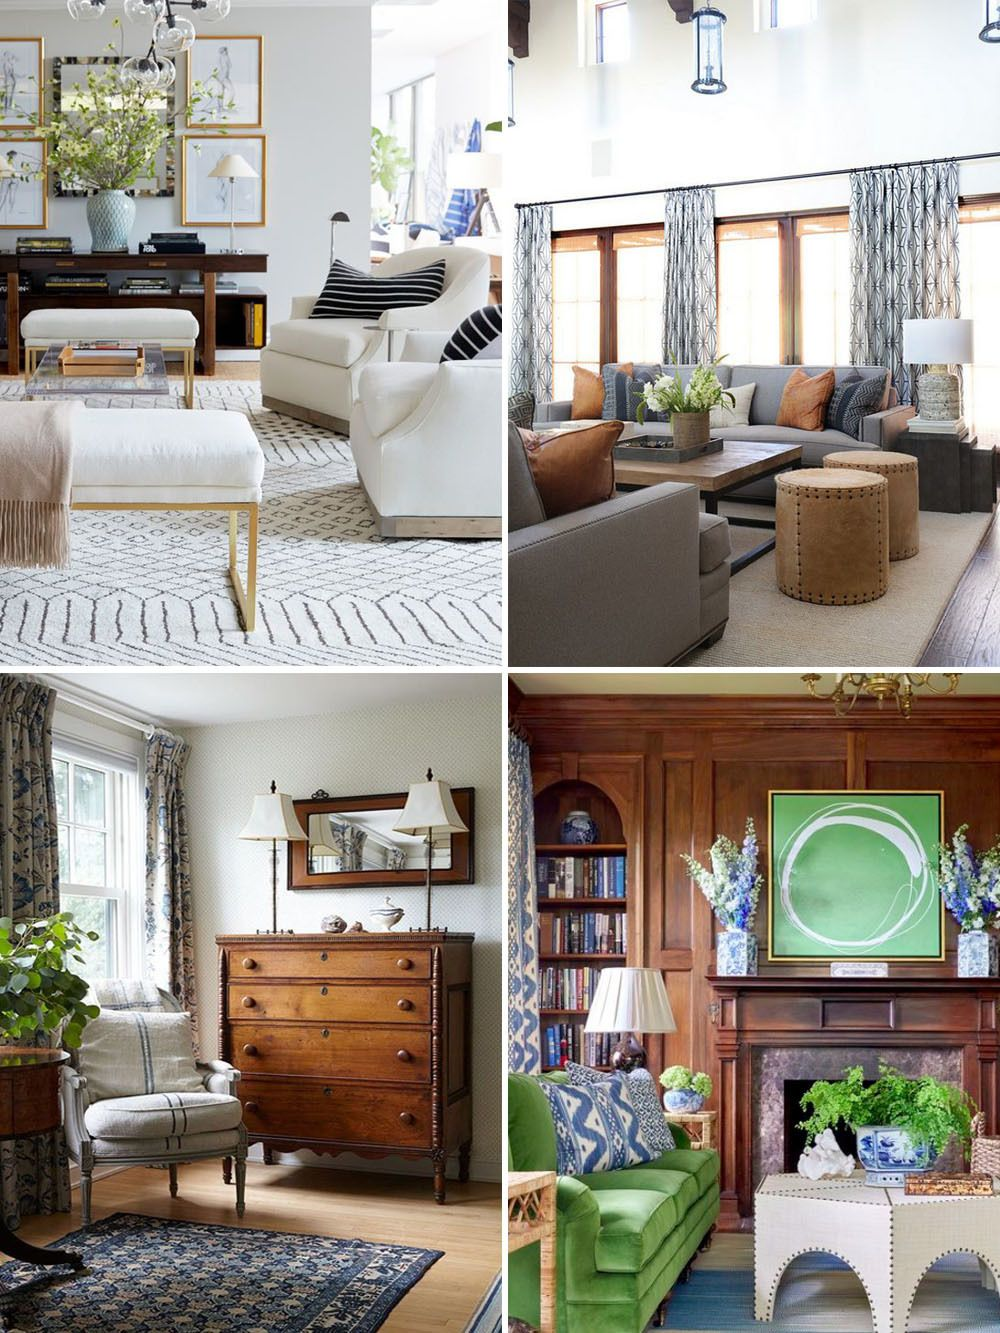 Want To Know The Difference Between Transitional And Traditional Interior Decor Styles We Ve Got It All Laid Out For You